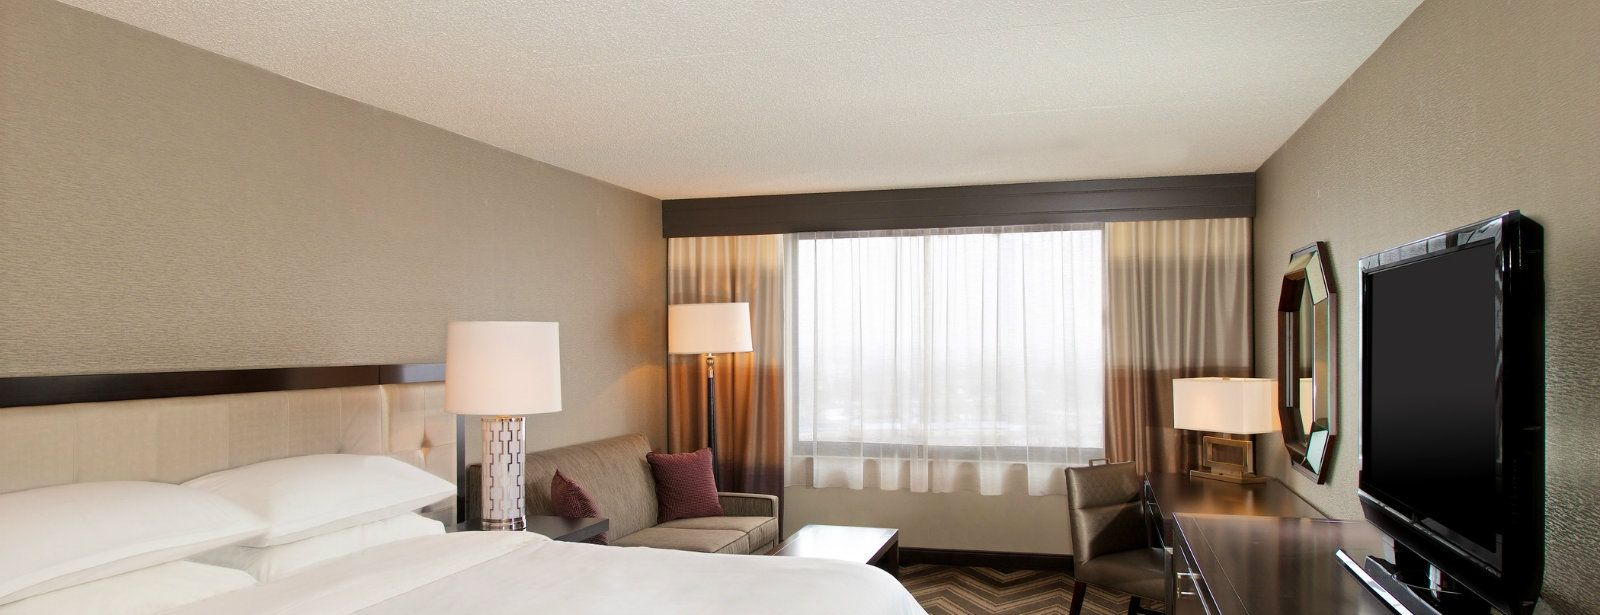 Accessible Guest Room | Sheraton Bucks County Hotel